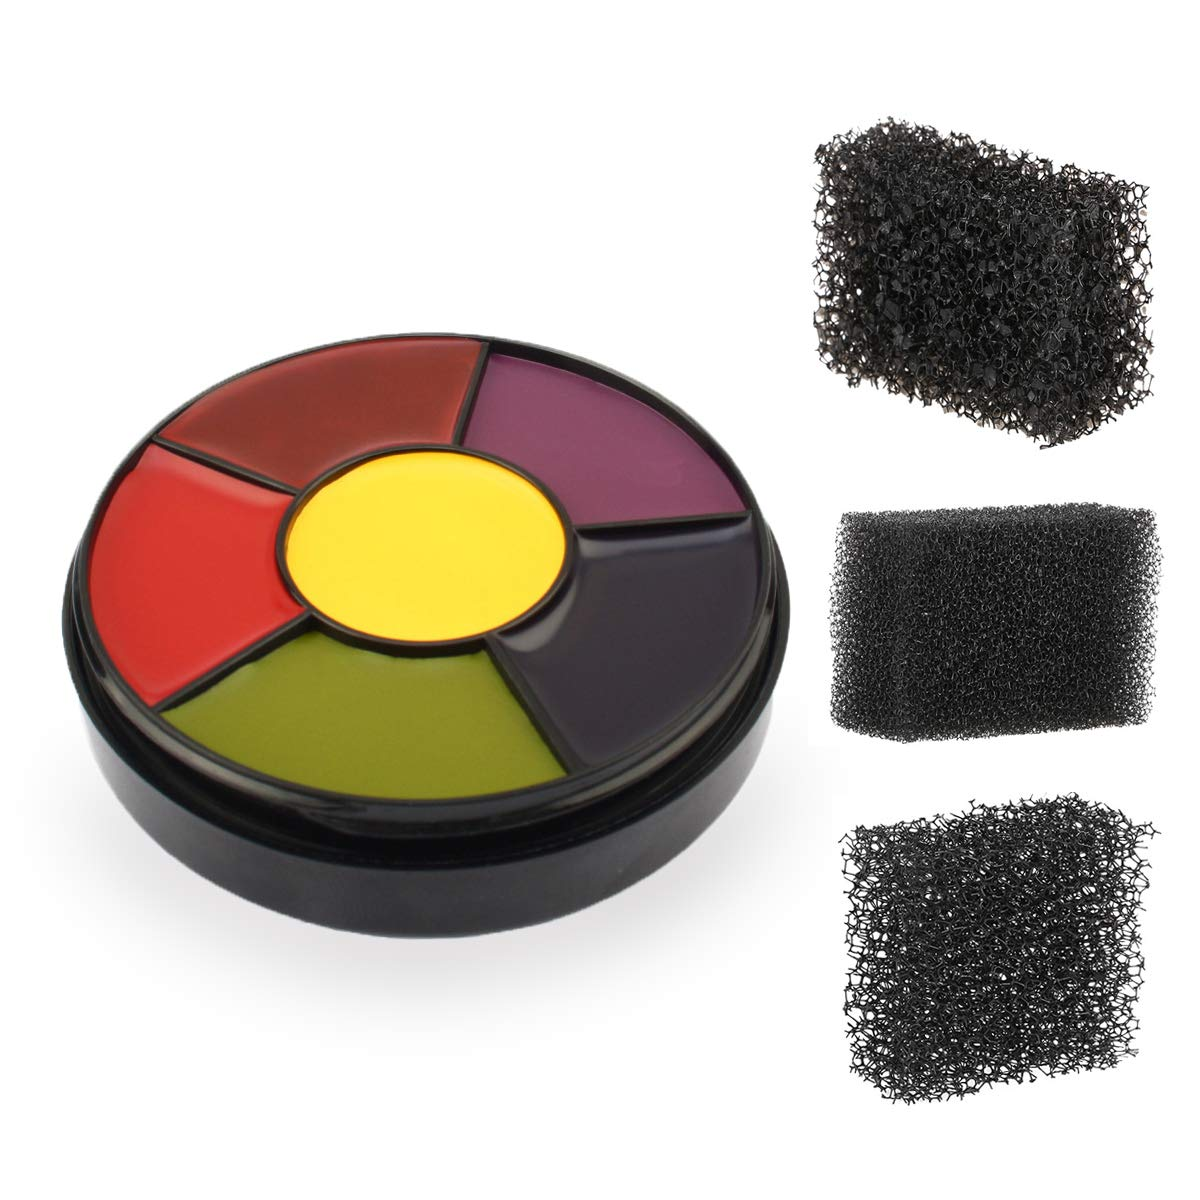 6 Color Bruise Wheel for Special Effects, Face Body Oil Paint Theatrical Halloween Makeup with 3pcs Stipple Sponges